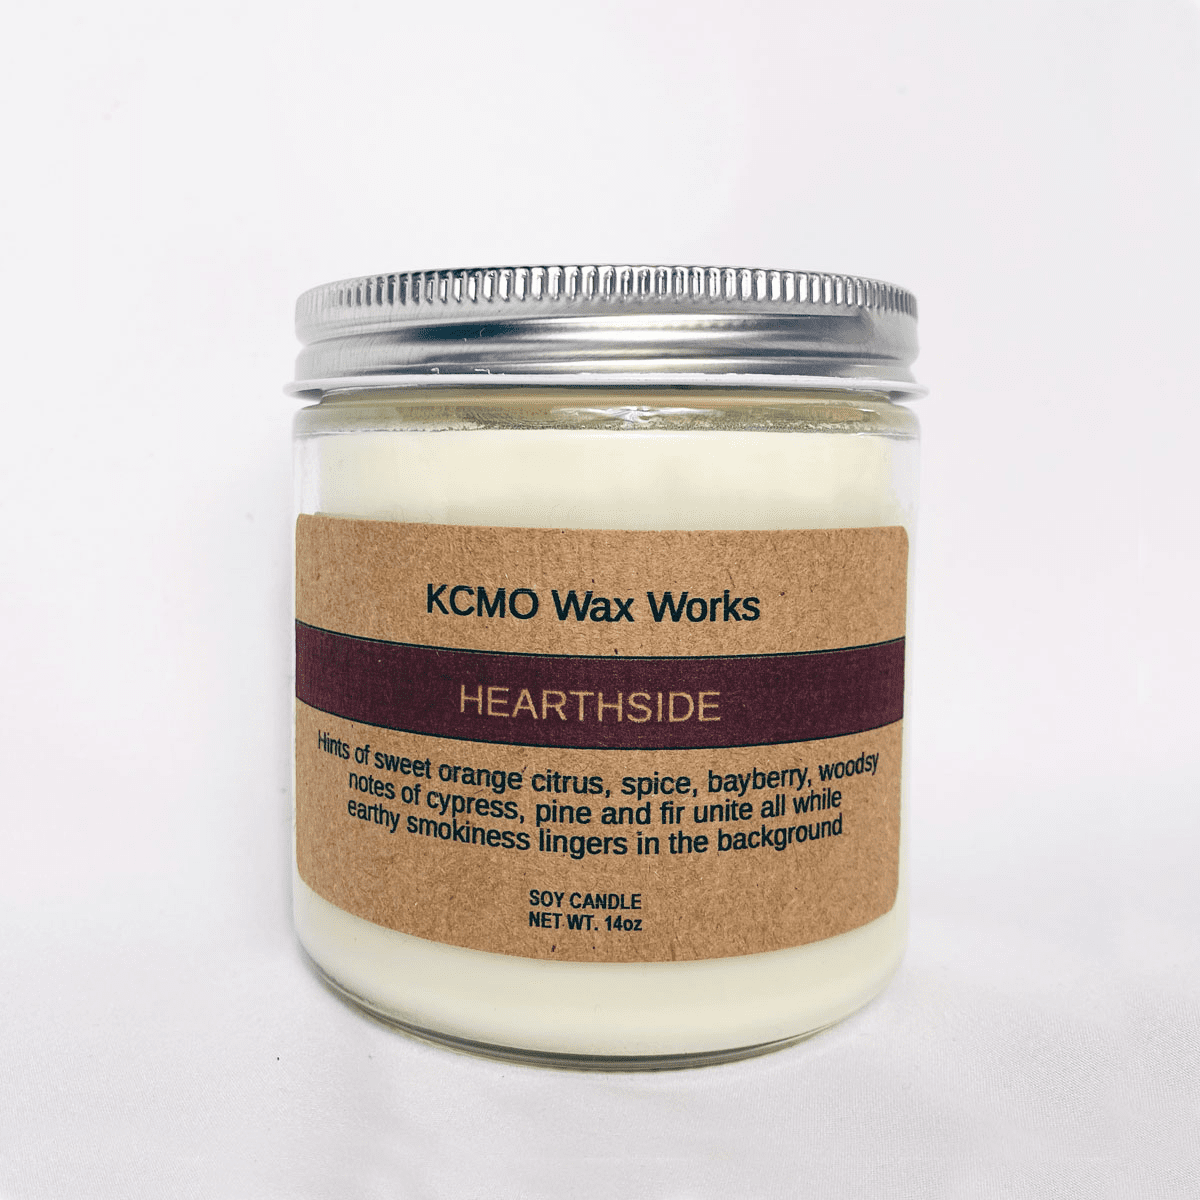 KCMO Wax Works Hearthside Soy Candle